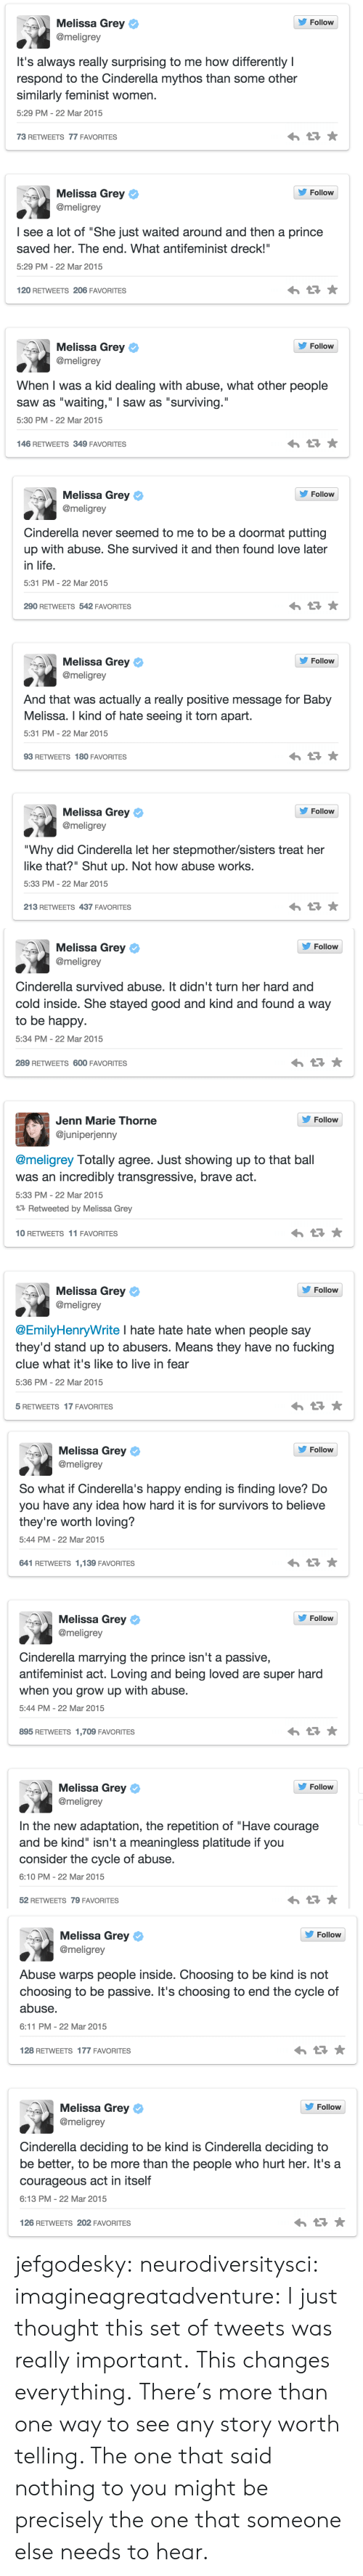 """Changes Everything: s, Melissa Grey  Follow  @meligrey  It's always really surprising to me how differently I  respond to the Cinderella mythos than some other  similarly feminist women.  5:29 PM-22 Mar 2015  73 RETWEETS 77 FAVORITES  Follow  Melissa Grey  @meligrey  I see a lot of """"She just waited around and then a prince  saved her. The end. What antifeminist dreck!""""  5:29 PM-22 Mar 2015  120 RETWEETS 206 FAVORITES  s, Melissa Grey  Follow  @meligrey  When I was a kid dealing with abuse, what other people  saw as """"waiting,"""" I saw as """"surviving.""""  5:30 PM- 22 Mar 2015  146 RETWEETS 349 FAVORITES   Melissa Grey ф  @meligrey  ' Follow  Cinderella never seemed to me to be a doormat putting  up with abuse. She survived it and then found love later  in life  5:31 PM-22 Mar 2015  290 RETWEETS 542 FAVORITES  Follow  Melissa Grey ф  @meligrey  And that was actually a really positive message for Baby  Melissa. I kind of hate seeing it torn apart.  5:31 PM-22 Mar 2015  93 RETWEETS 180 FAVORITES  Follow  Melissa Grey ф  @meligrey  """"Why did Cinderella let her stepmother/sisters treat her  like that?"""" Shut up. Not how abuse works.  5:33 PM-22 Mar 2015  213 RETWEETS 437 FAVORITES   s, Melissa Grey  @meligrey  Follow  Cinderella survived abuse. It didn't turn her hard and  cold inside. She stayed good and kind and found a way  to be happy  5:34 PM- 22 Mar 2015  289 RETWEETS 600 FAVORITES  Follovw  Jenn Marie Thorne  @juniperjenny  @meligrey Totally agree. Just showing up to that ball  was an incredibly transgressive, brave act.  5:33 PM- 22 Mar 2015  Retweeted by Melissa Grey  10 RETWEETS 11 FAVORITES  s, Melissa Grey  Follow  @meligrey  @EmilyHenryWrite I hate hate hate when people say  they'd stand up to abusers. Means they have no fucking  clue what it's like to live in fear  5:36 PM- 22 Mar 2015  5 RETWEETS 17 FAVORITES   Follow  Melissa Grey ф  @meligrey  So what if Cinderella's happy ending is finding love? Do  you have any idea how hard it is for survivors to believe  they"""